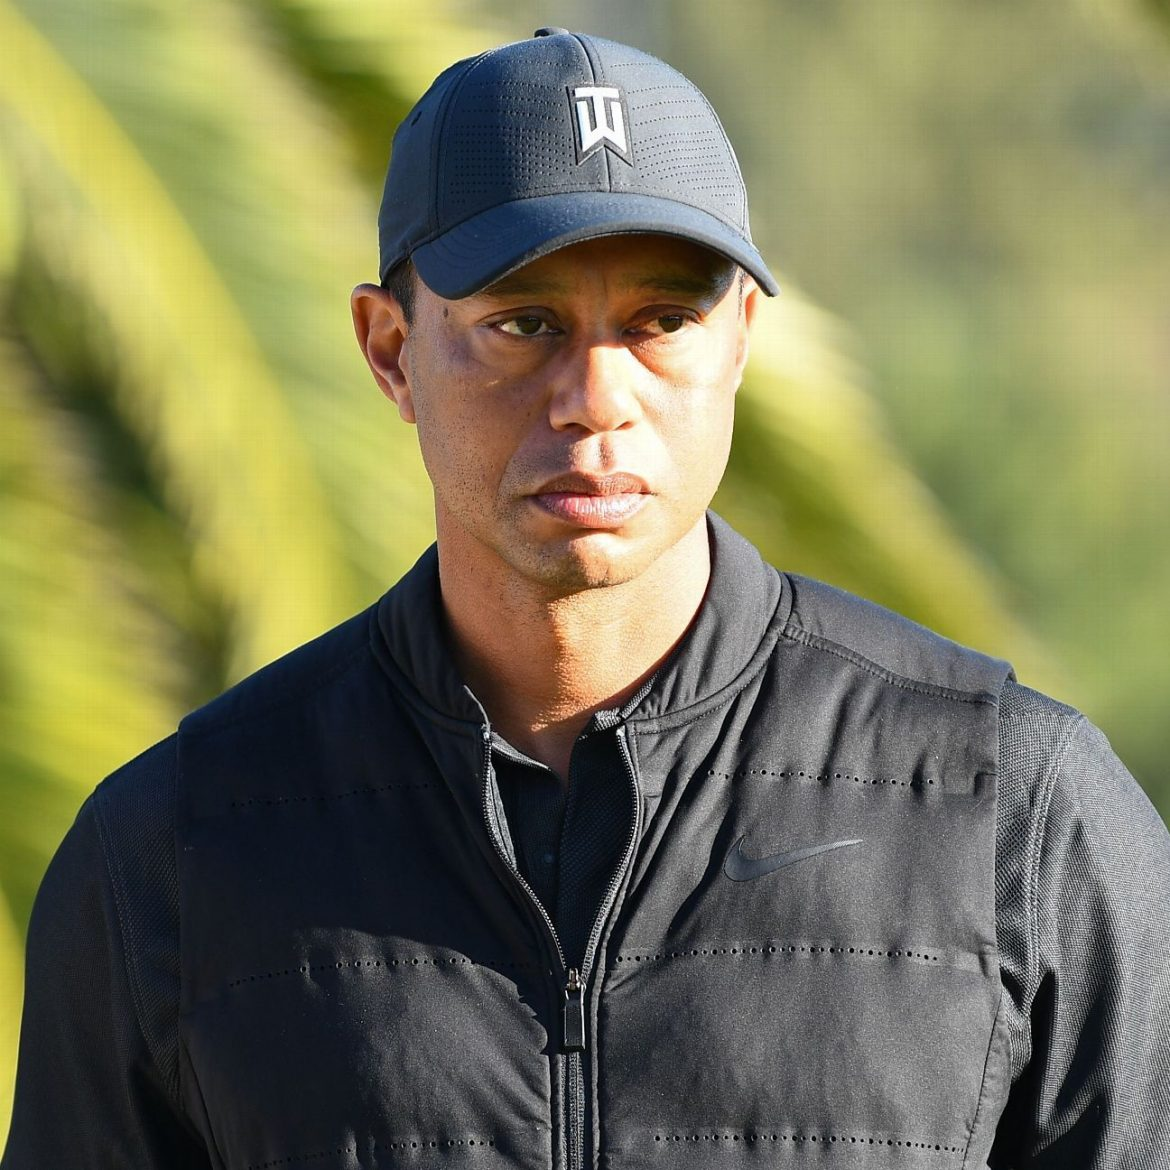 Tiger out of surgery for 'significant' leg injuries